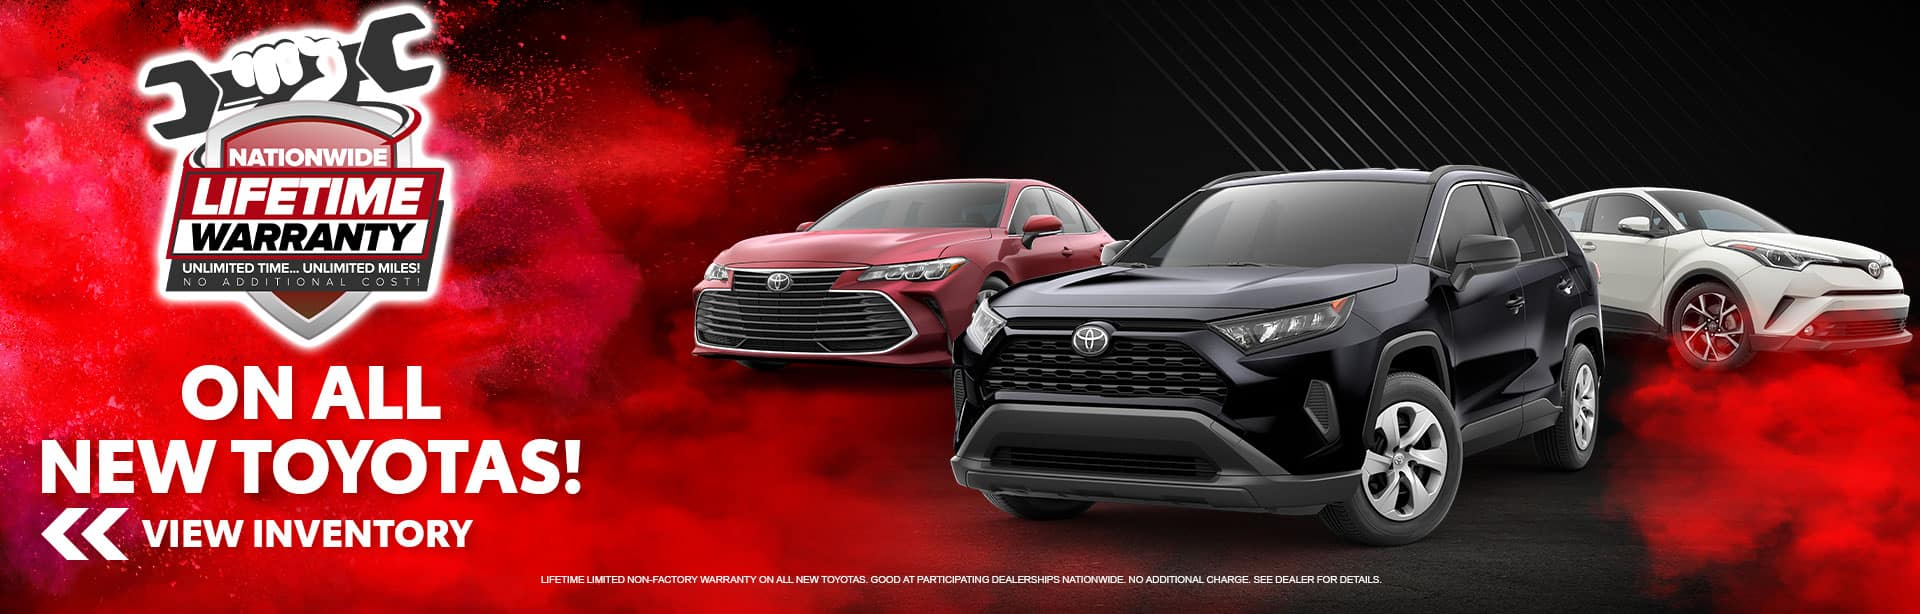 Nationwide Lifetime Warranty on all New Toyotas at Bev Smith Toyota!